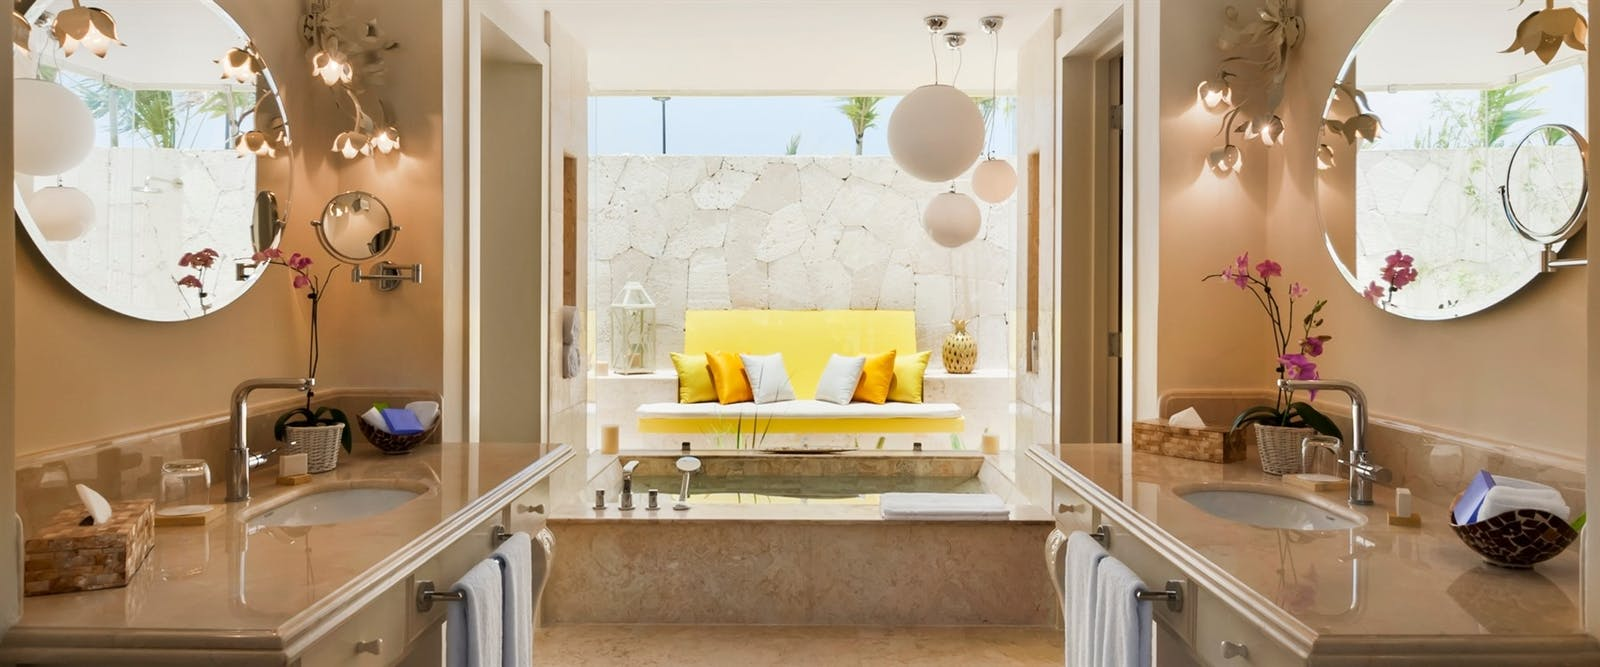 Coral Stone Bathroom with Marble Jacuzzi at Eden Roc at Cap Cana Boutique Suites & Beach Club, Dominican Republic